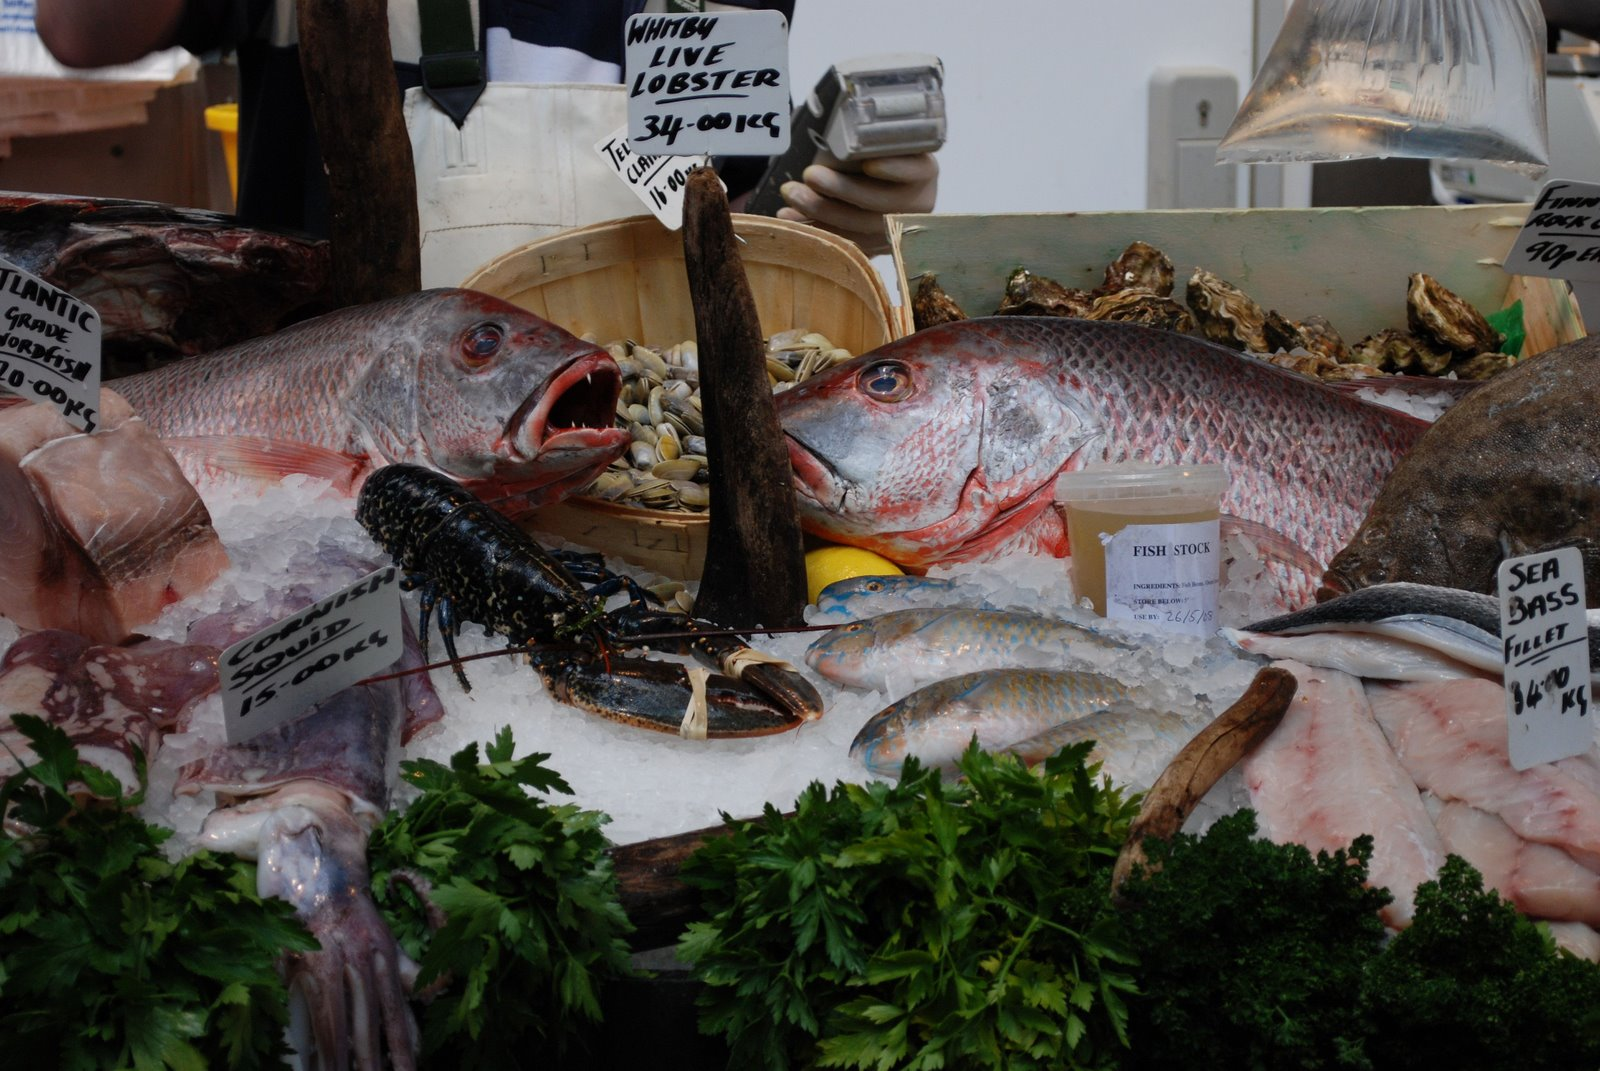 borough market, fish stand